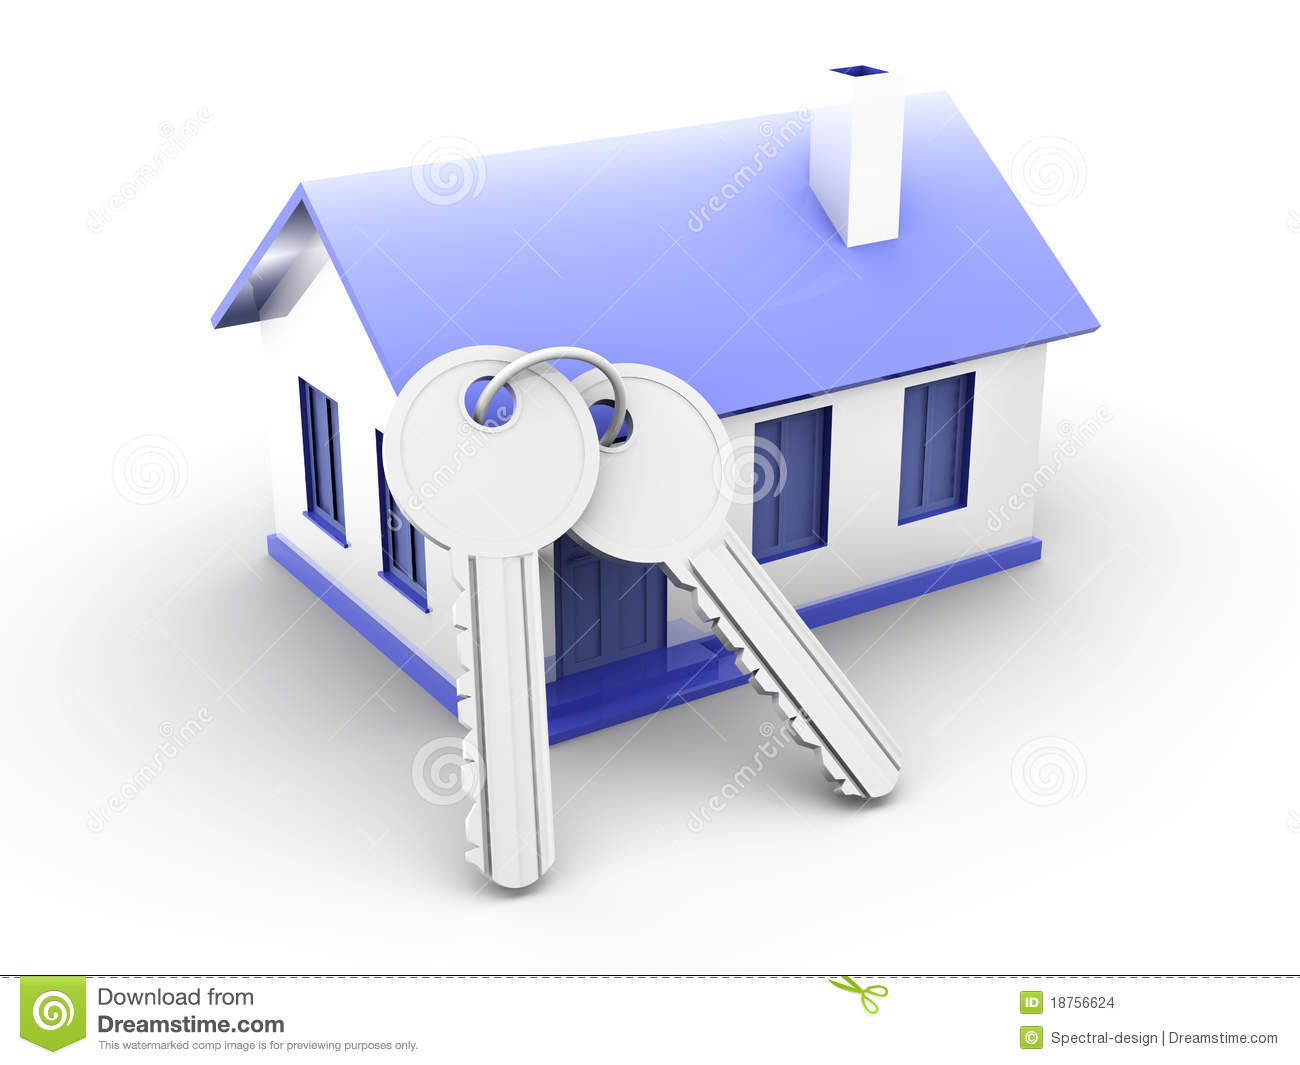 Royalty Free Stock Images Open Door Illustration Image5165109 in addition Abstract 3d Illustration Of Key With House Model Image 1988337 further Stock Illustration Home Security System Logo Concept Image72248056 additionally Range additionally Univision Gets 500k Grant For Investigative Journalism Unit. on building security access plans